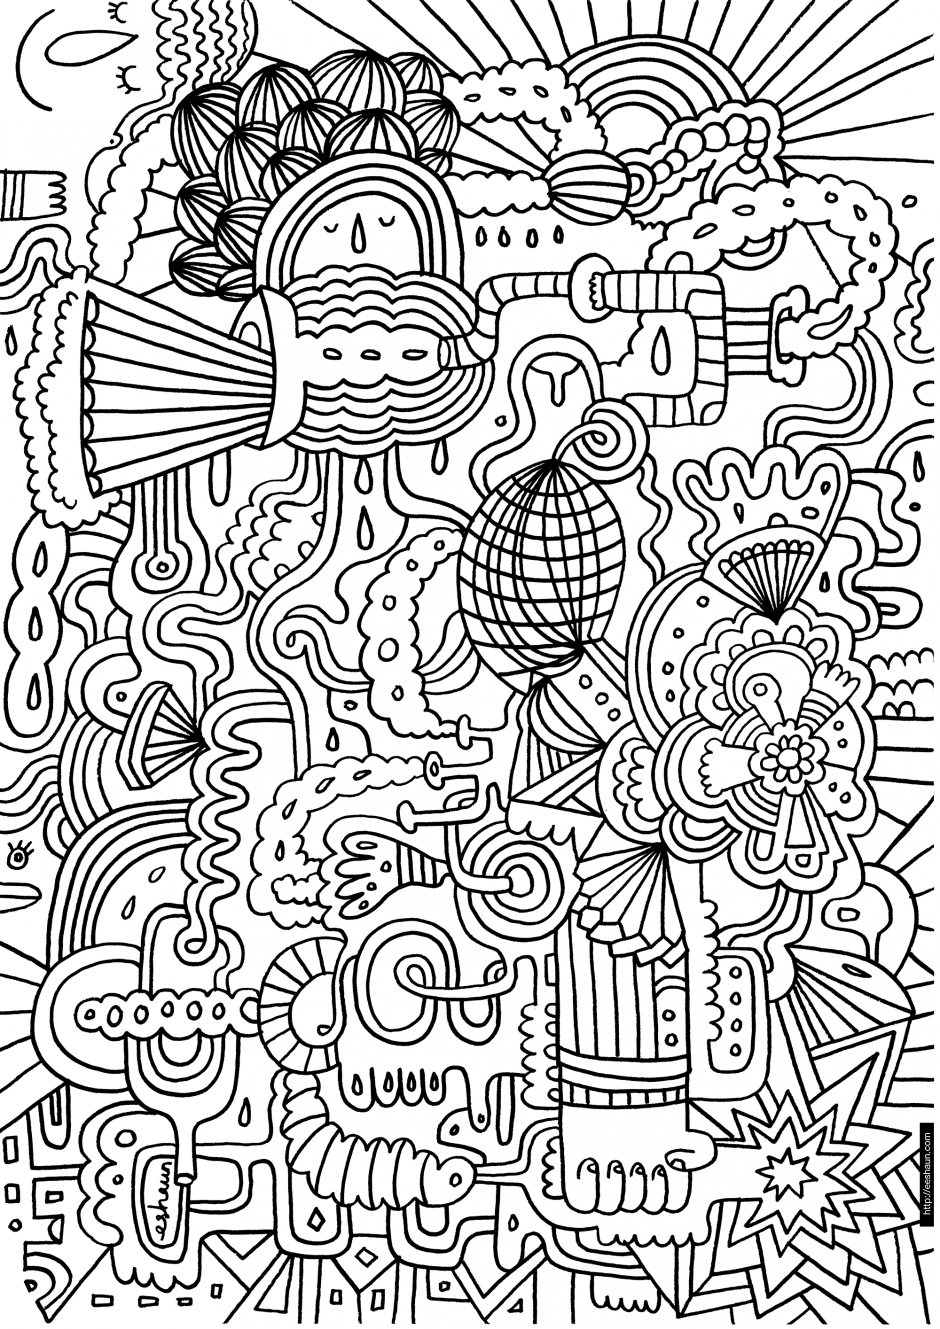 Difficult Coloring Page 29712,